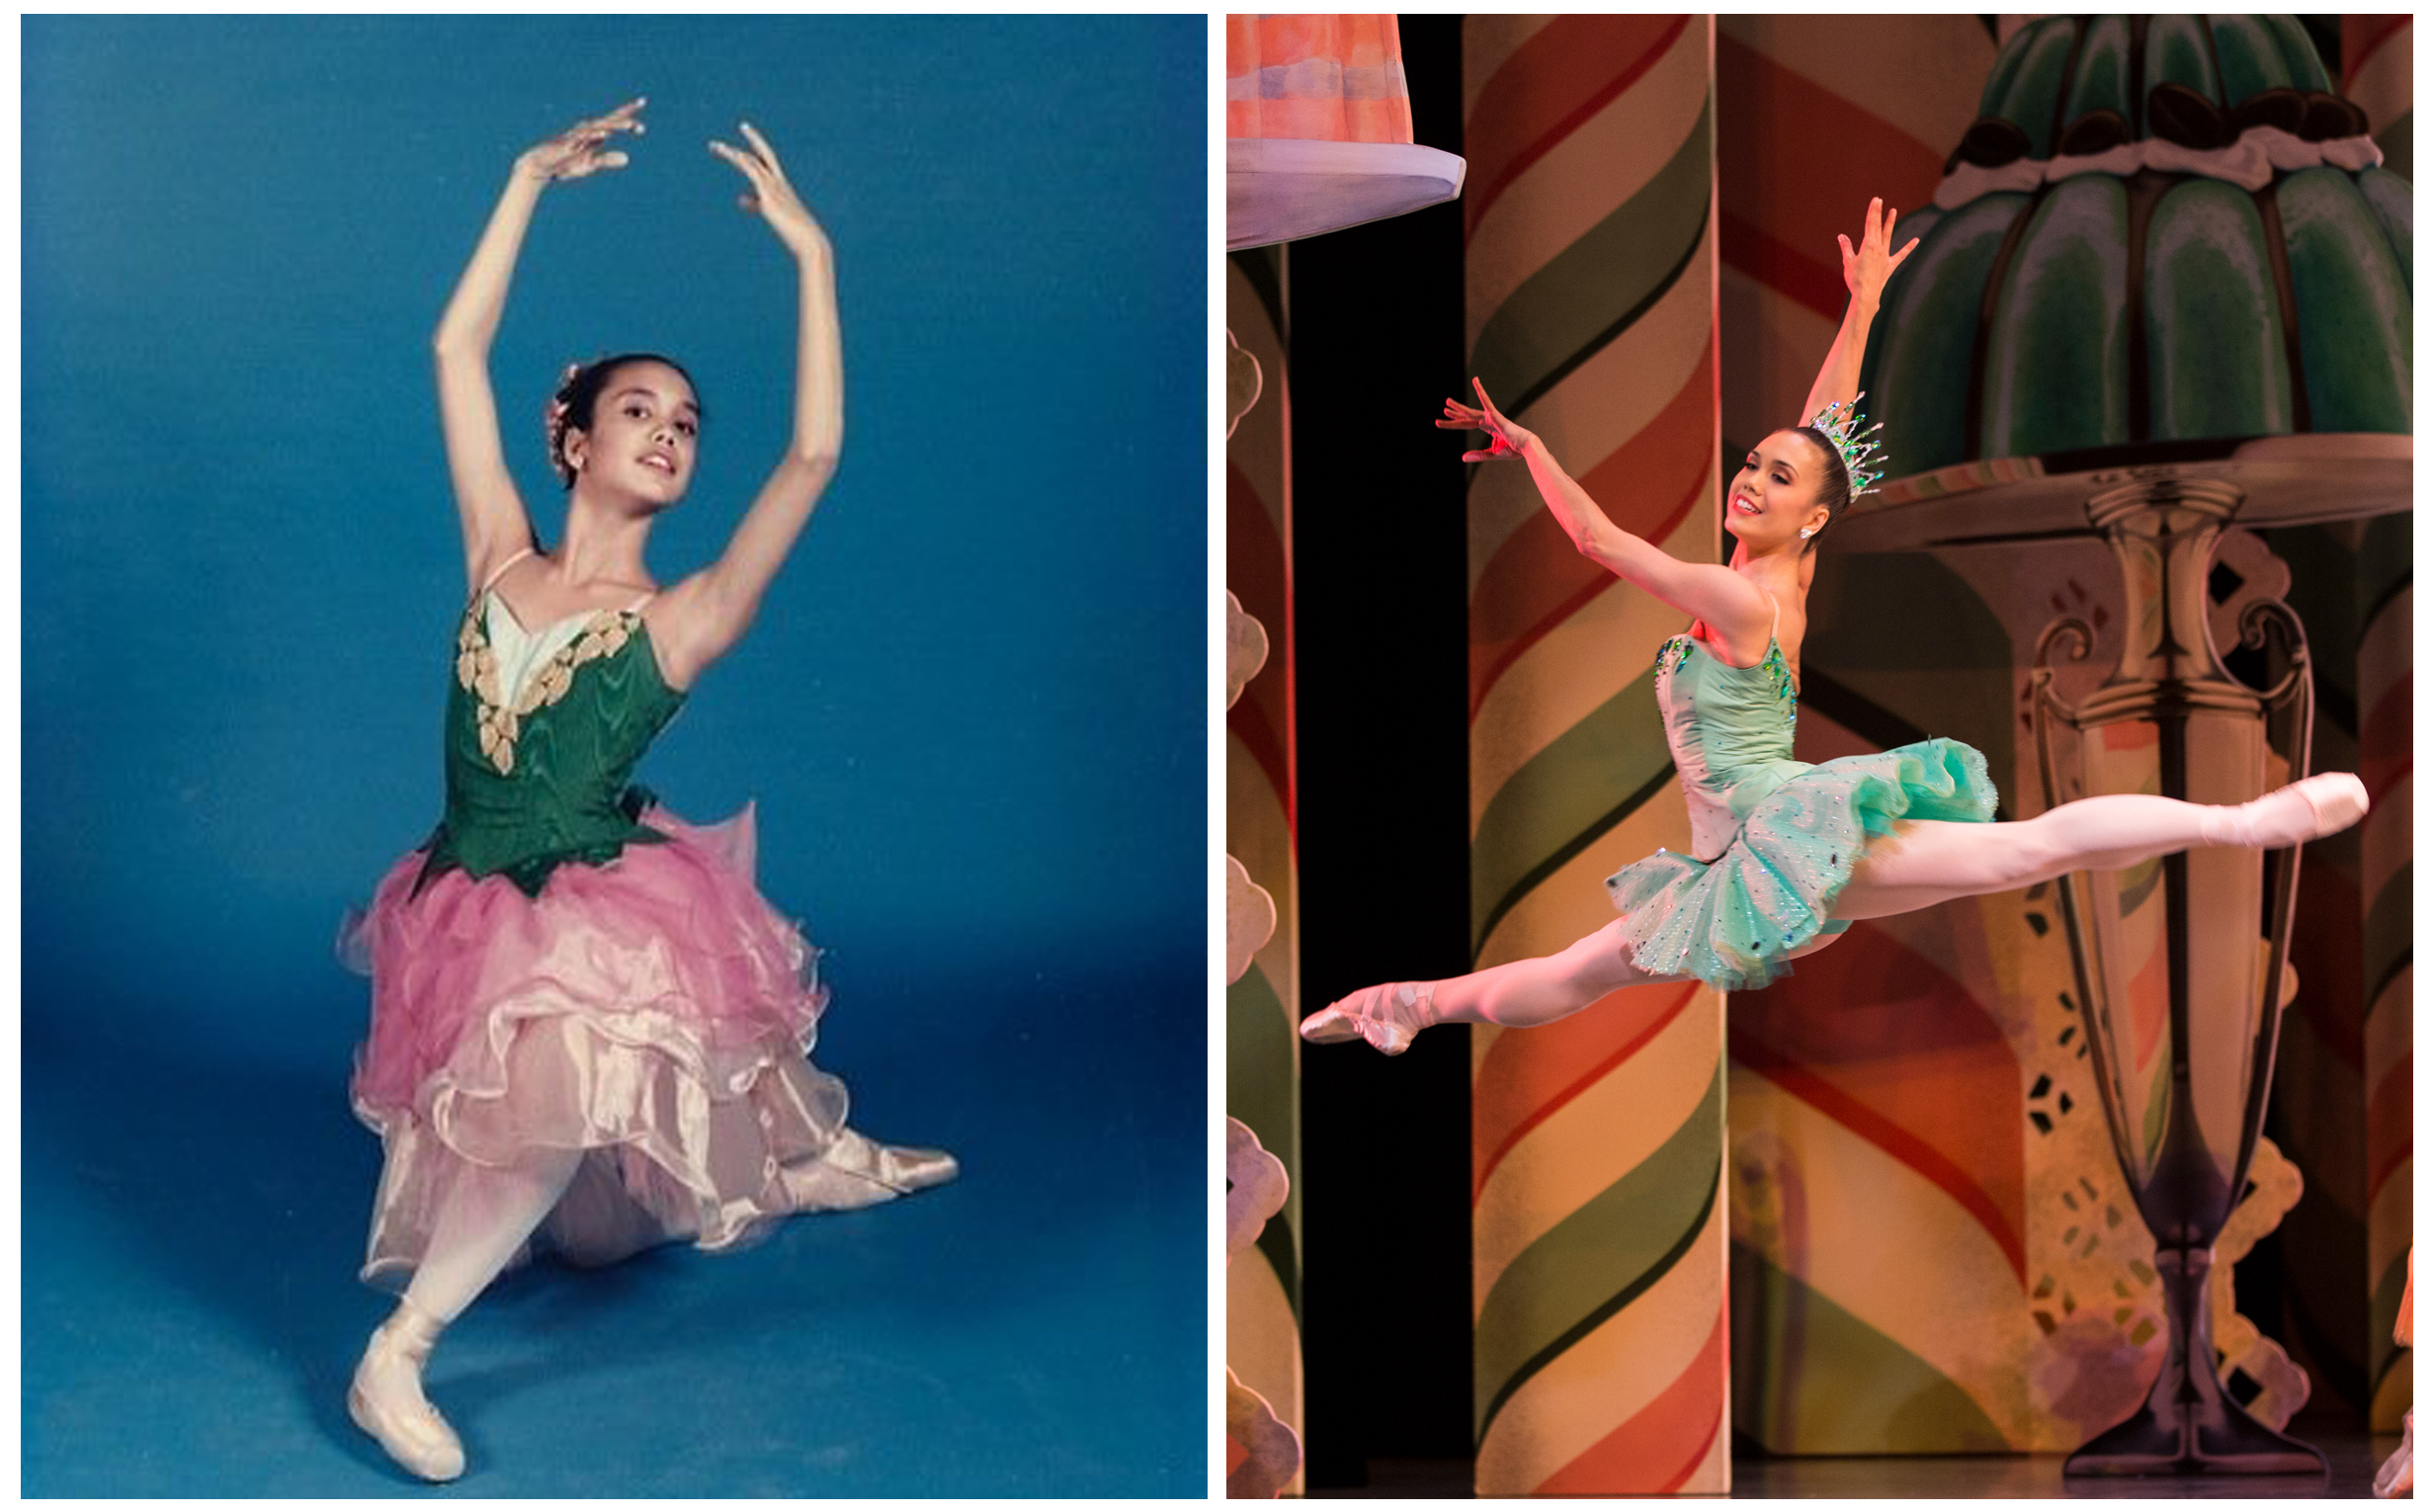 Noelani Pantastico - Now and Then, Nutcracker Grows Up